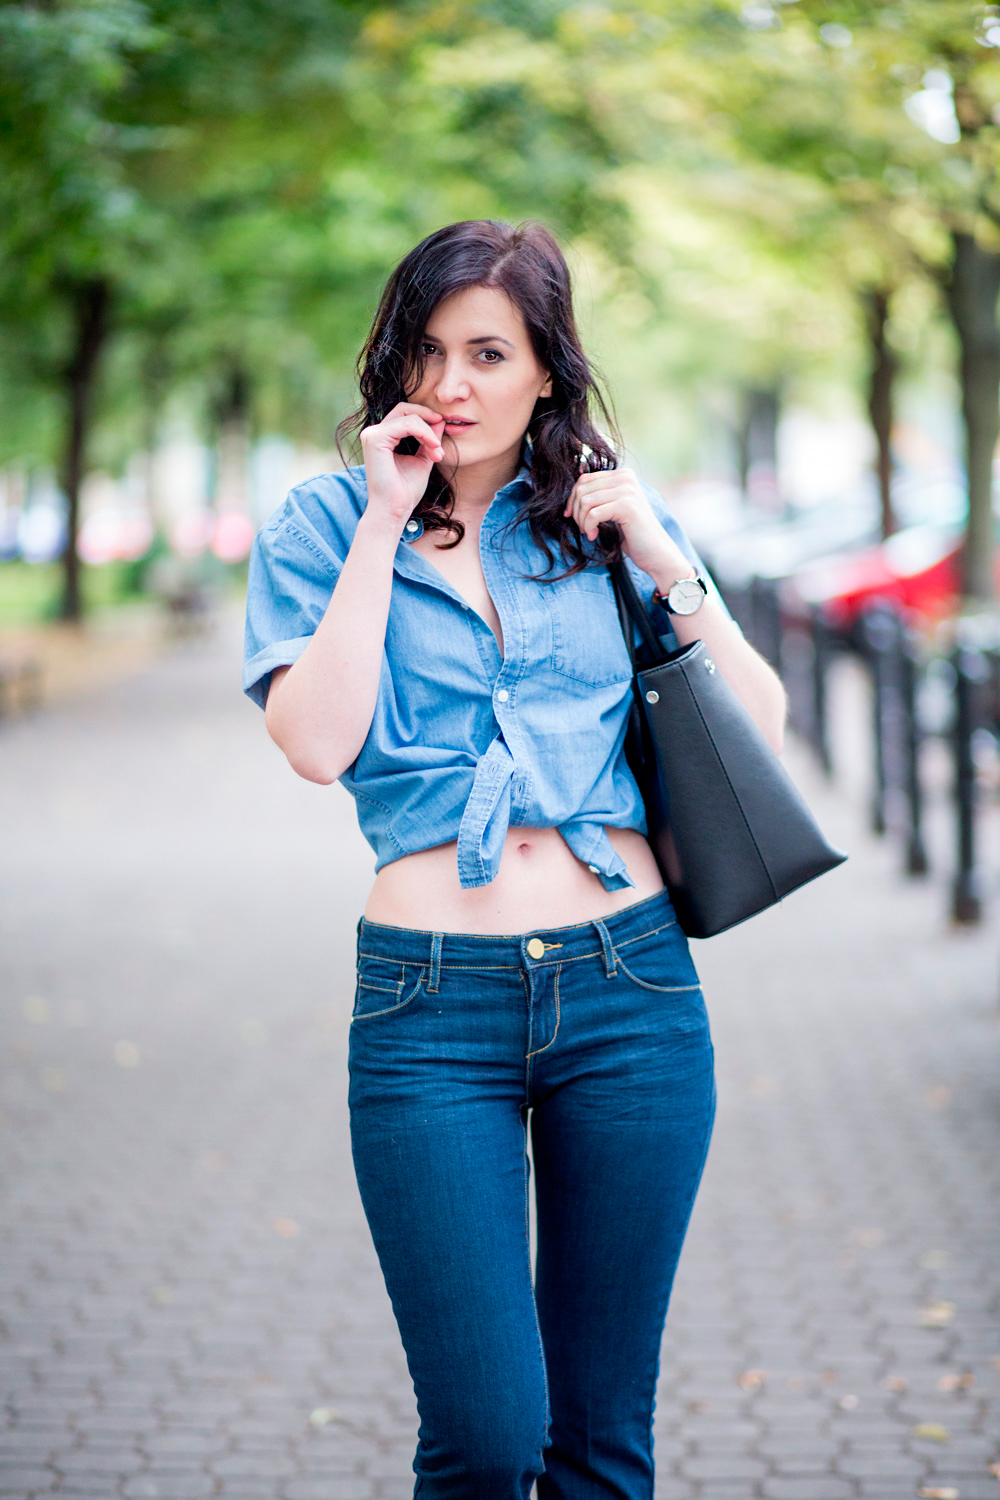 Bell Bottom Jeans Amp Tied Jeans Shirt Street Fashion